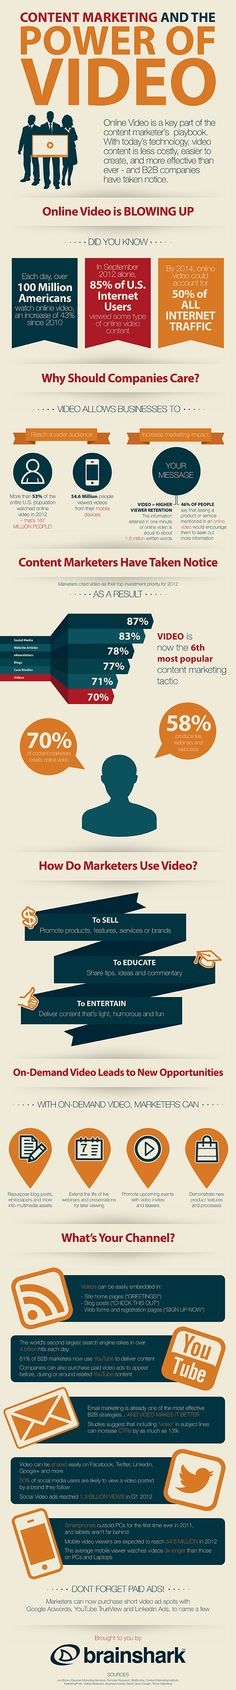 """Reasons to Use Video in Marketing [Infographic] Content marketing & the power of video > best advice for video ever received """"keep it under 3 mins"""" ;~)Content marketing & the power of video > best advice for video ever received """"keep it under 3 mins"""" ; Inbound Marketing, Marketing Digital, Marketing Trends, Marketing En Internet, Mobile Marketing, Business Marketing, Content Marketing, Social Media Marketing, Online Marketing"""